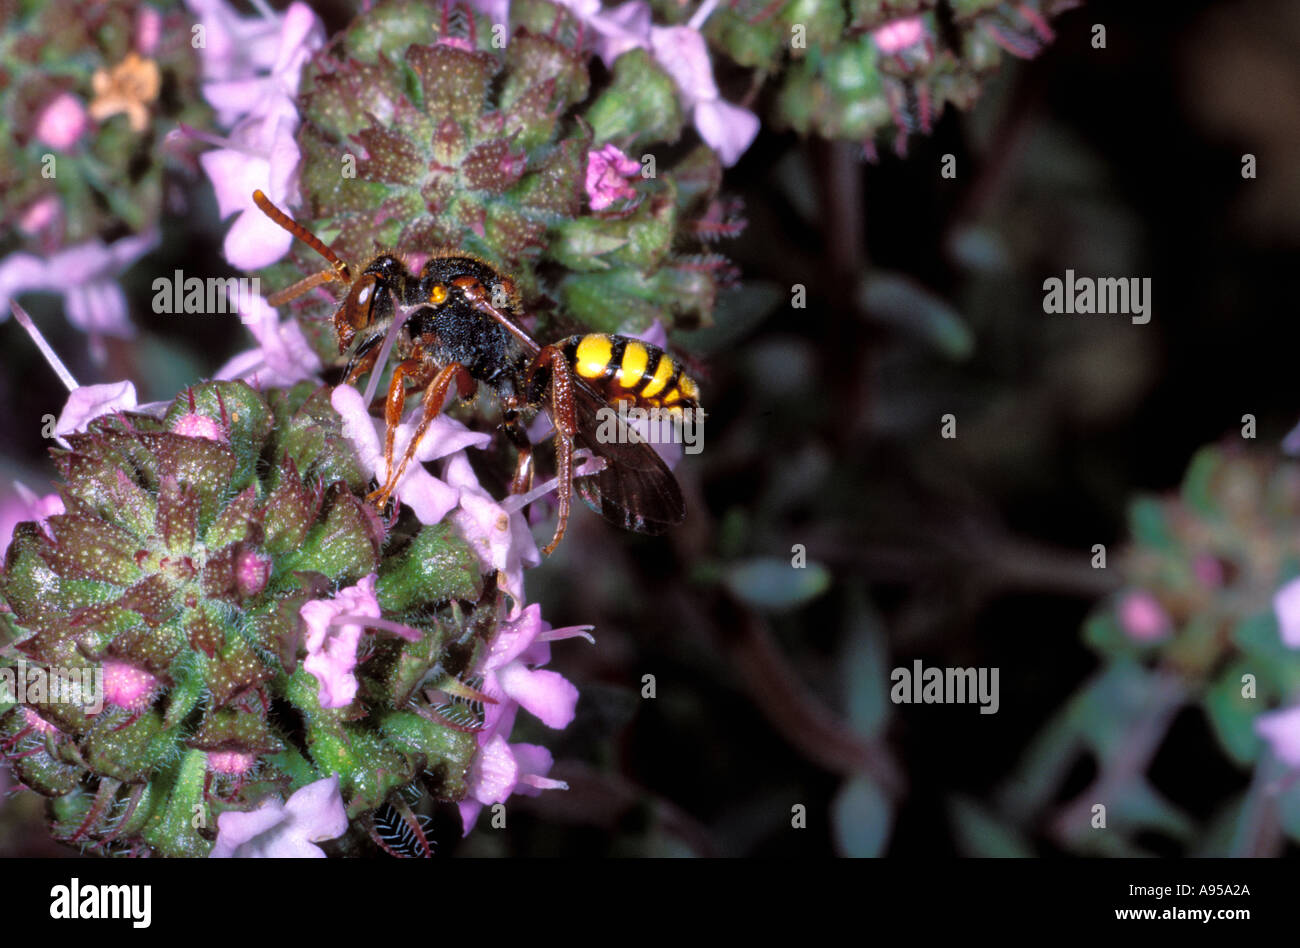 Hymenopteran on Thyme flower - Stock Image